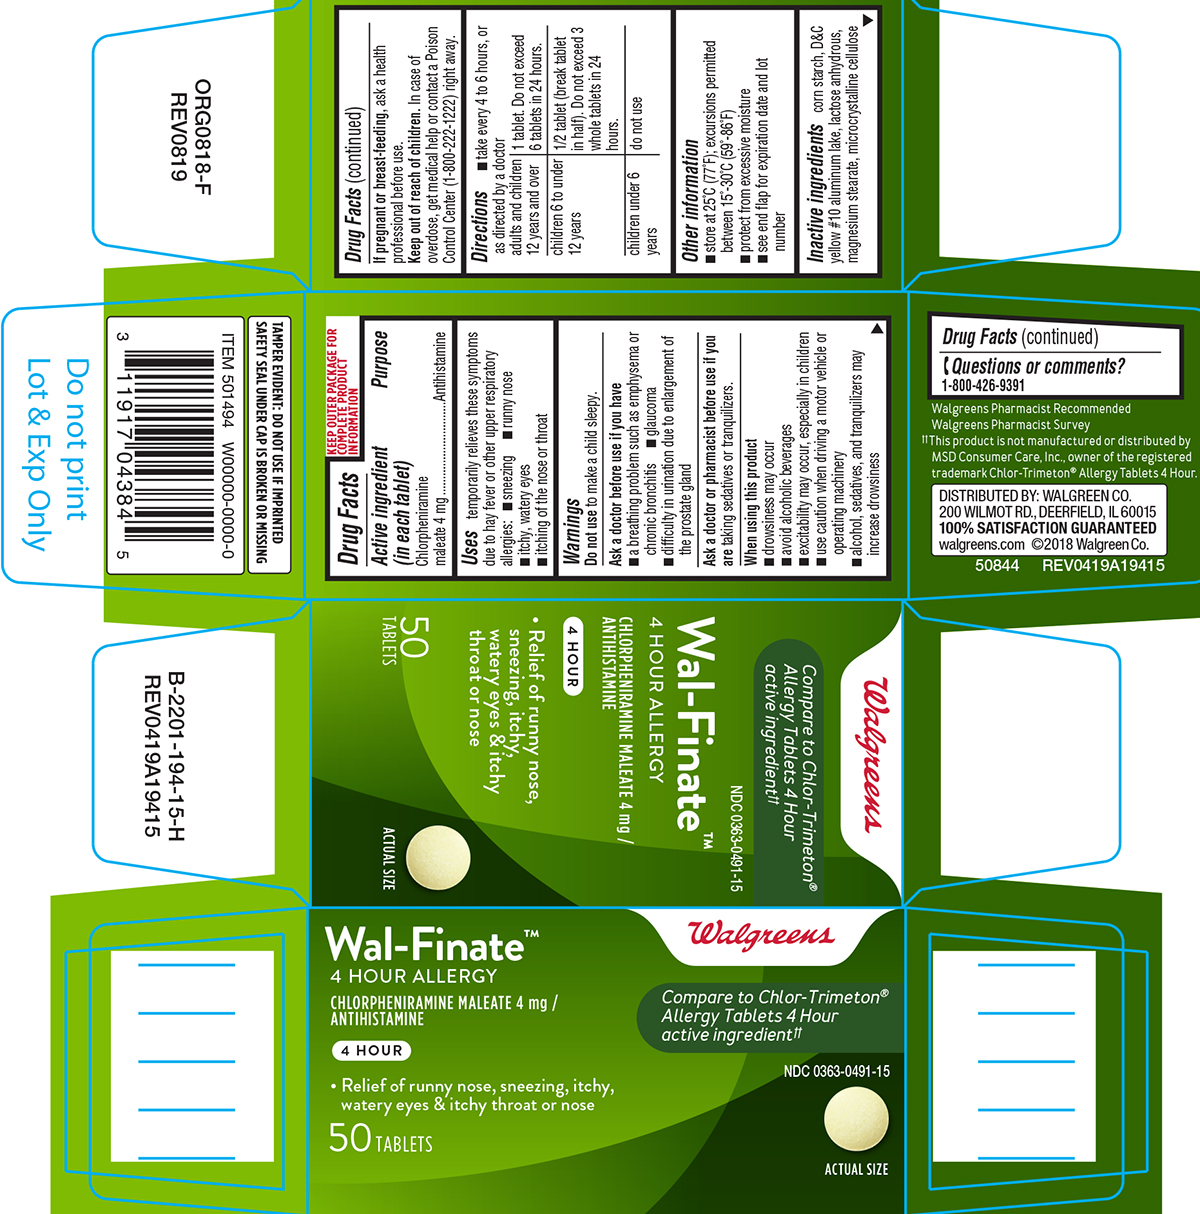 Wal-finite (Chlorpheniramine Maleate) Tablet [Walgreen Co.]